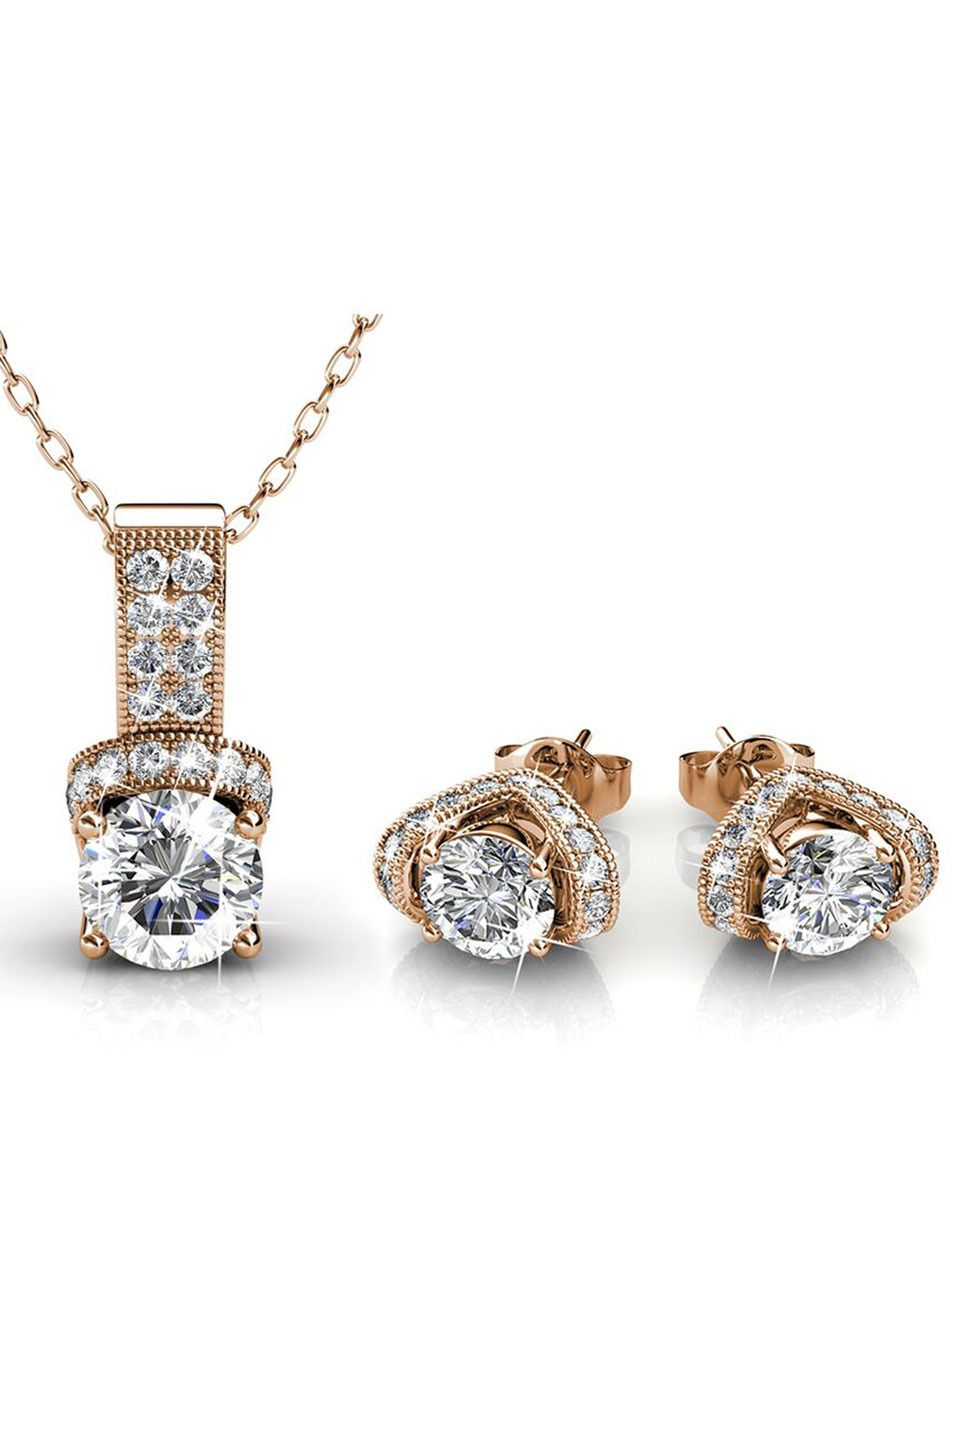 Le chic matching pendant and earrings set in gold and clear